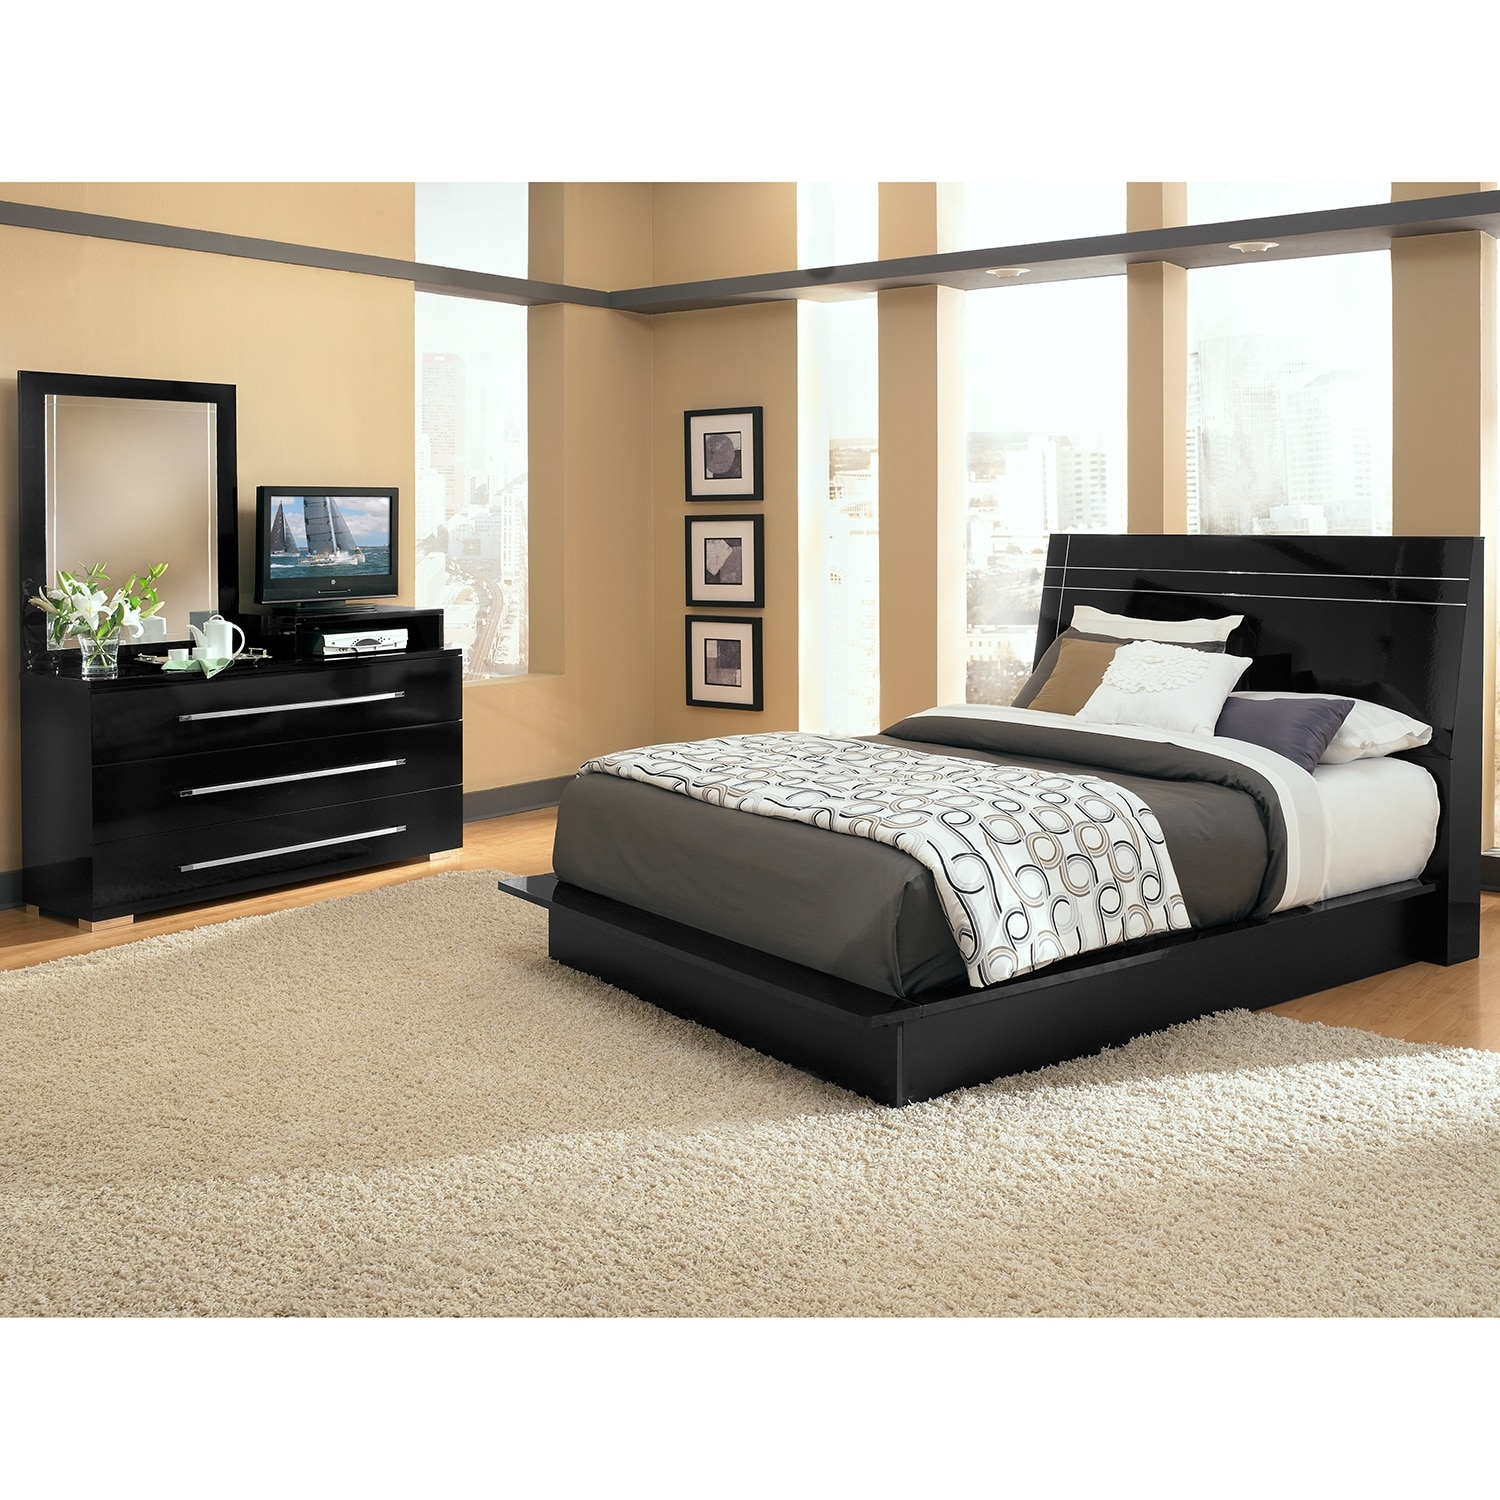 Dimora Black II 5 Pc. Queen Bedroom